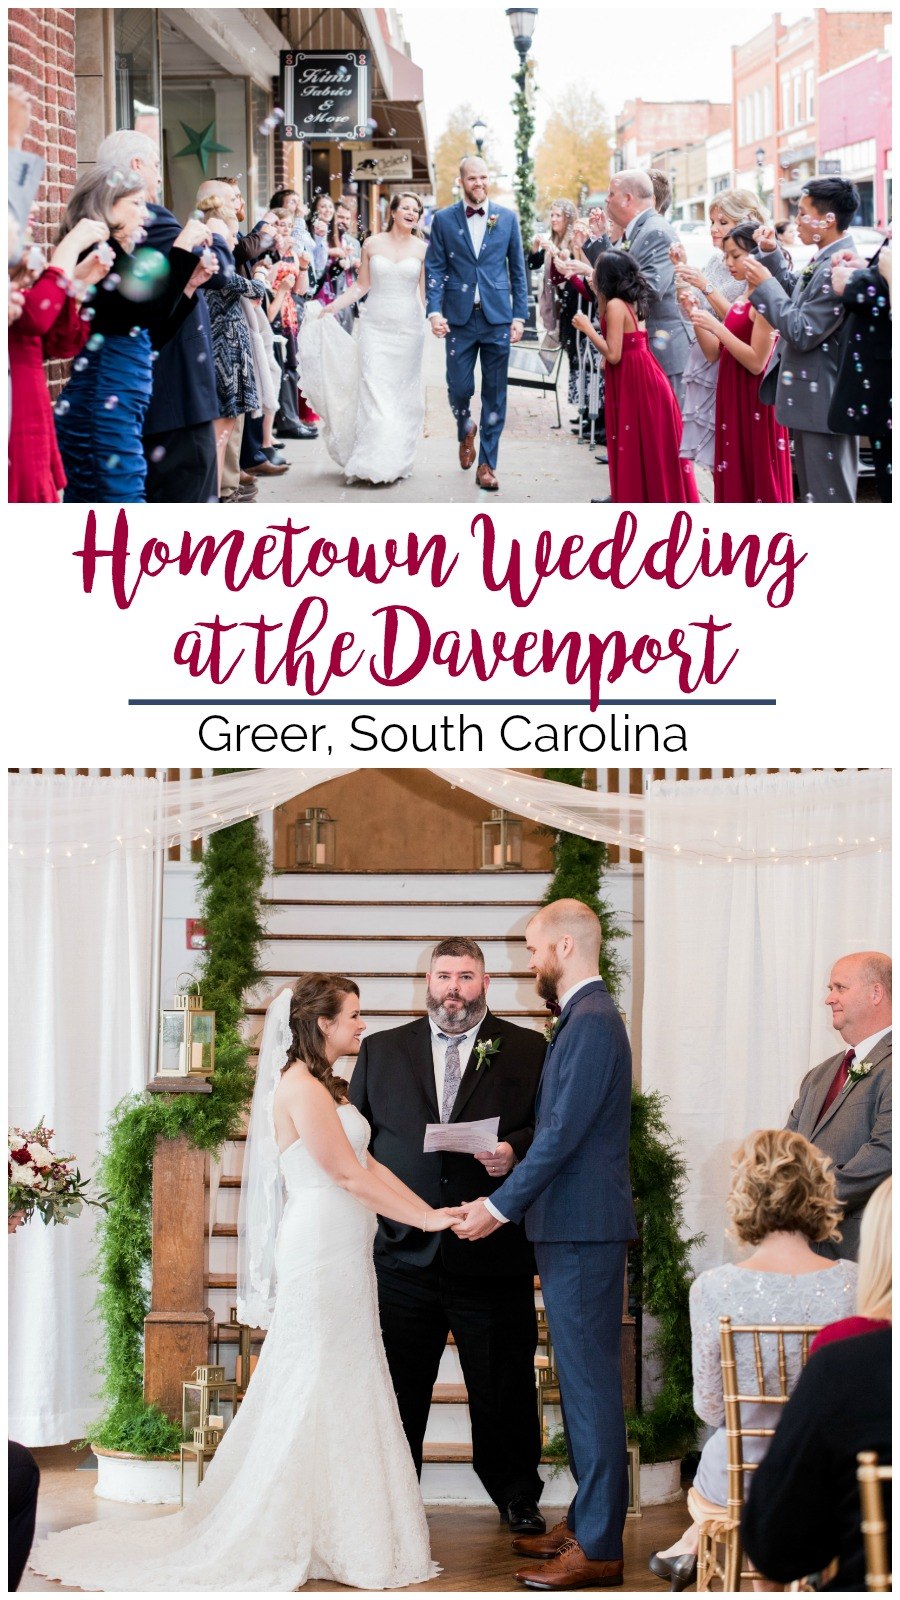 Kasey + Dillon: A Hometown Wedding at the Davenport, Greer, South Carolina | Palmetto State Weddings | Rebecca Hicks Photography